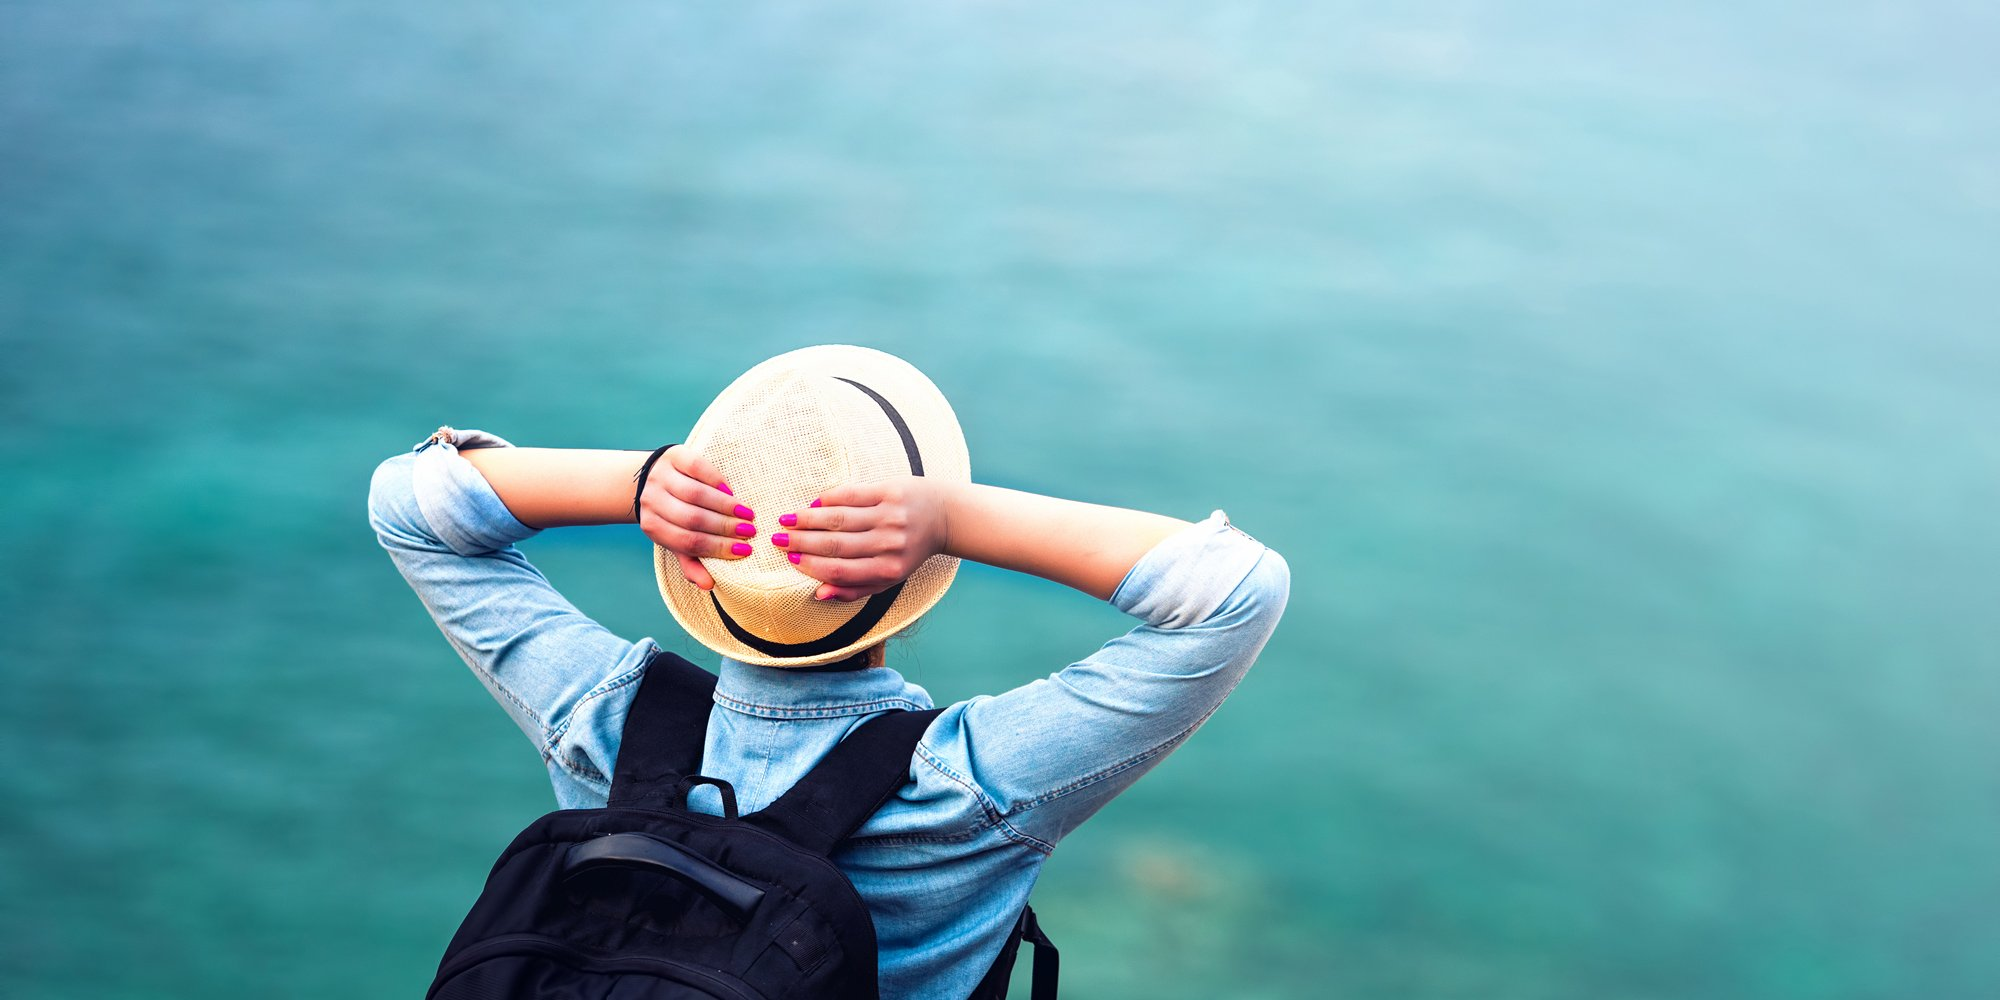 Kis 5 useful advices for your vacation re-entry | gallery 4